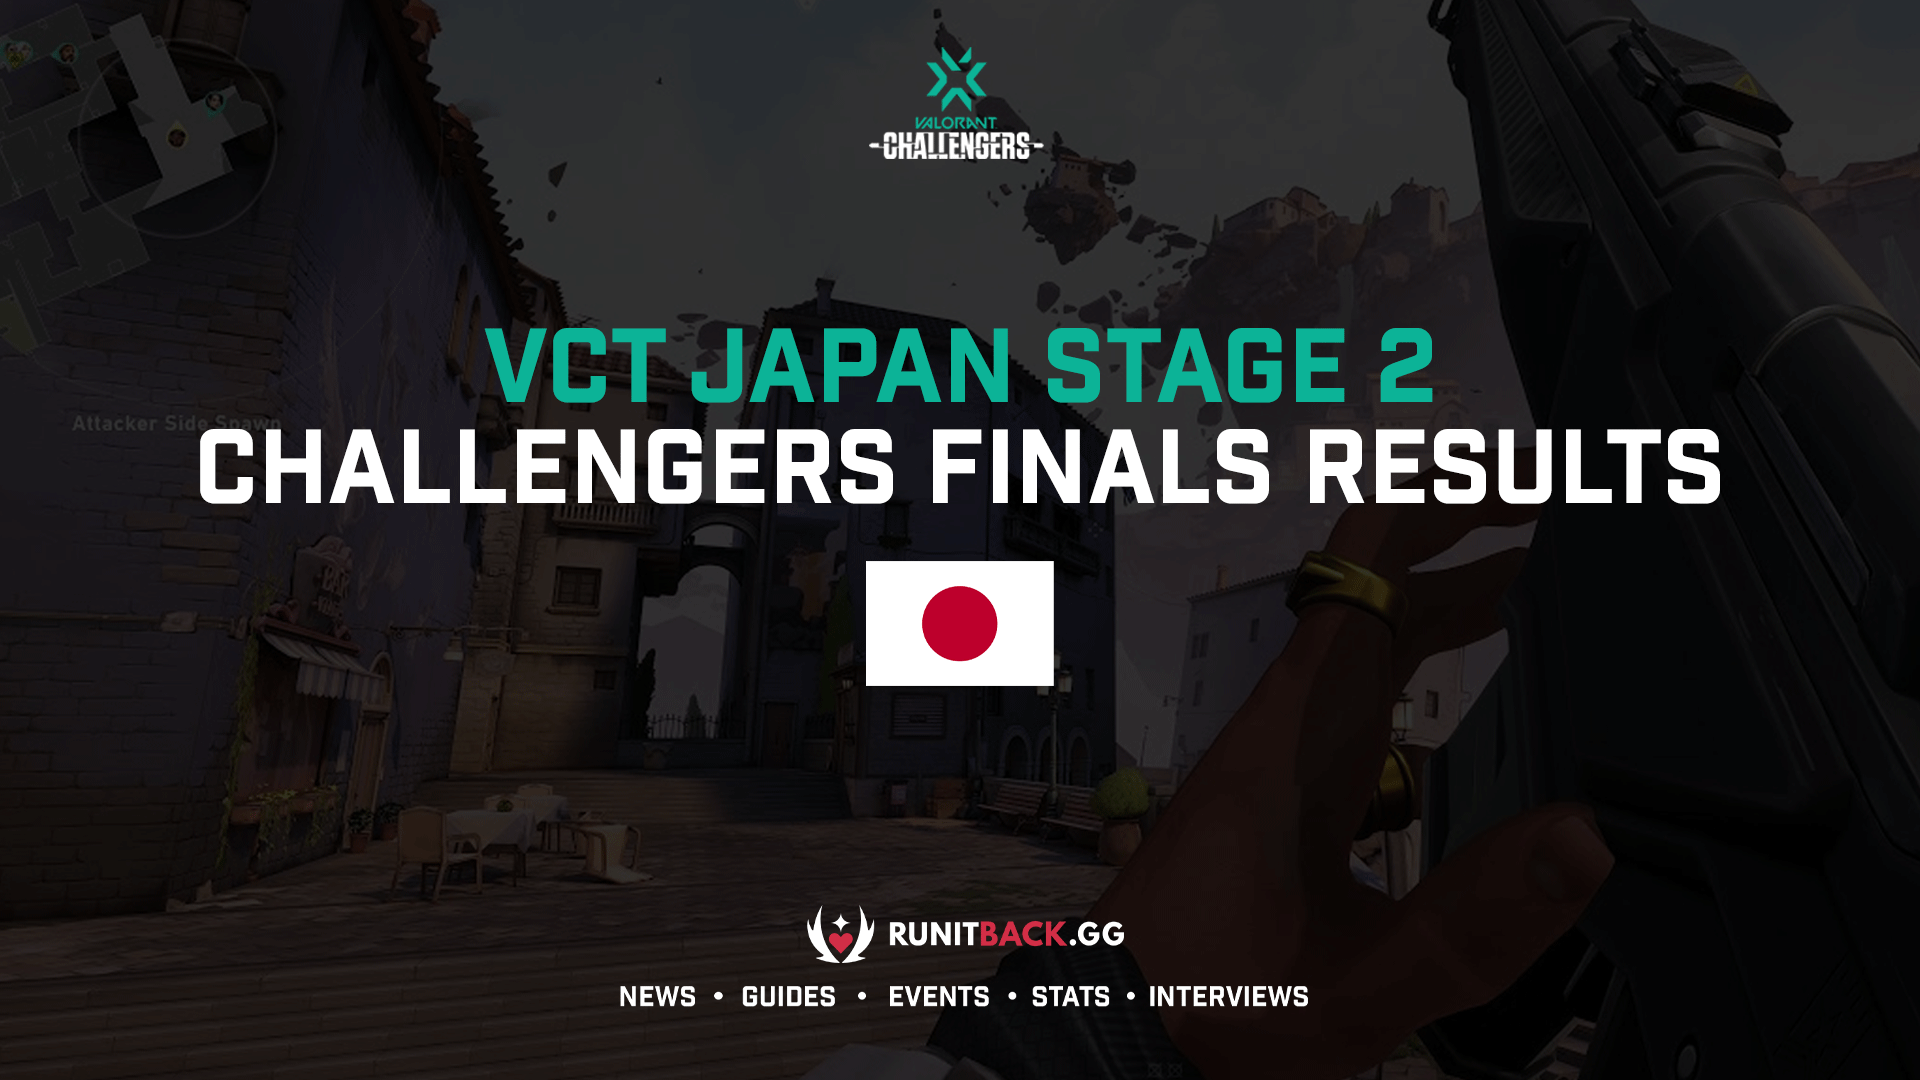 VCT Japan Stage 2 Challengers Finals Results